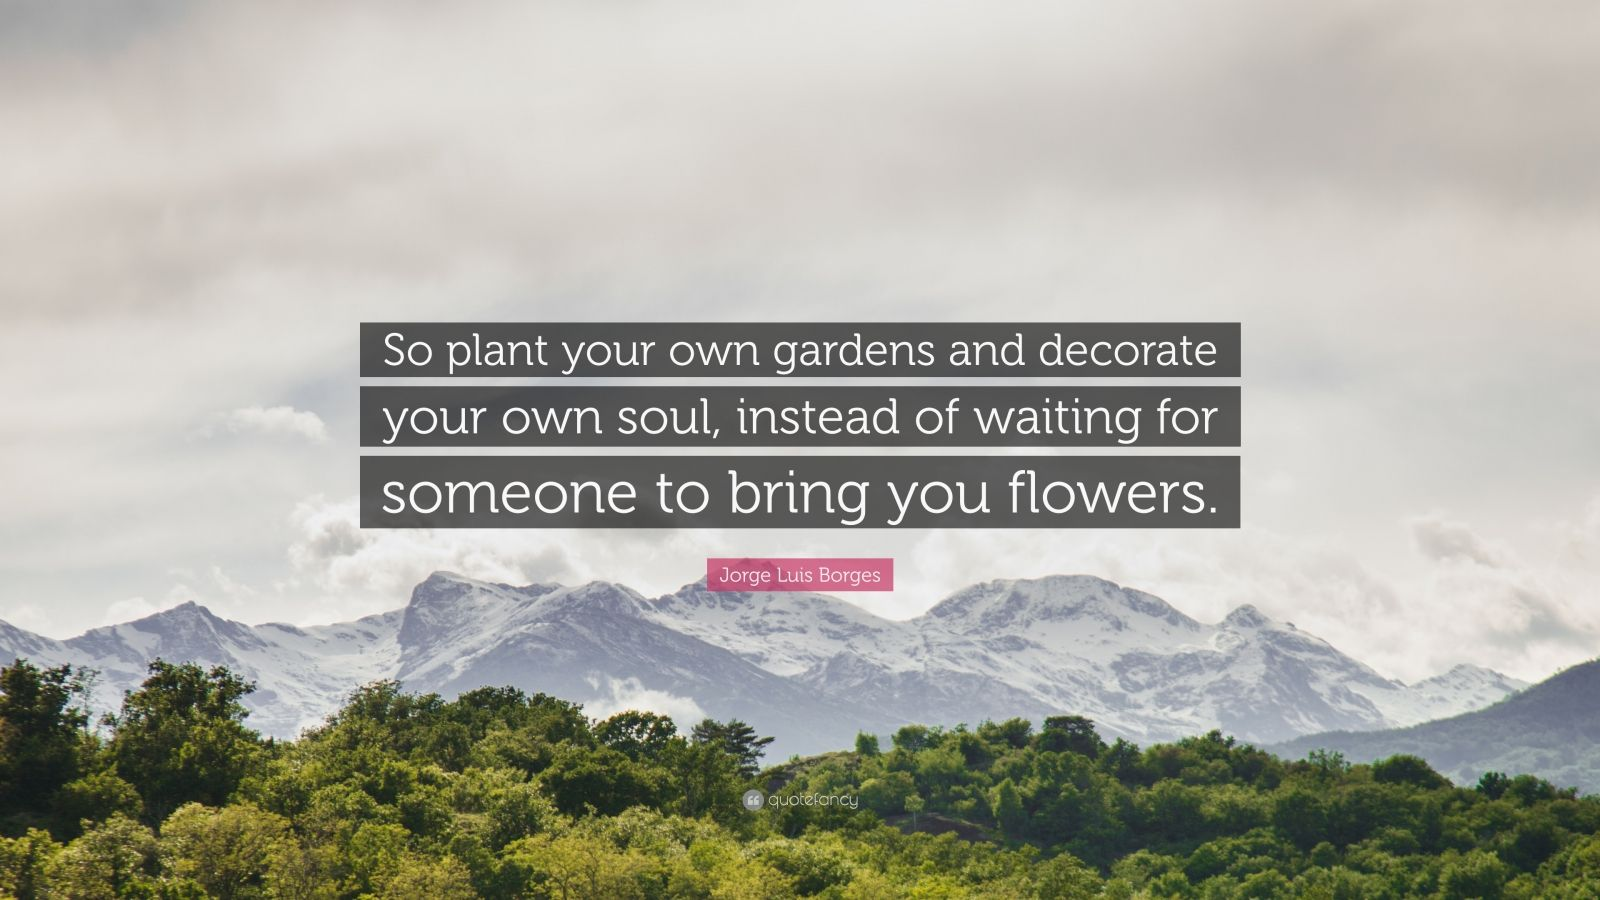 """Jorge Luis Borges Quote: """"So plant your own gardens and decorate your own soul, instead of waiting for someone to bring you flowers."""""""